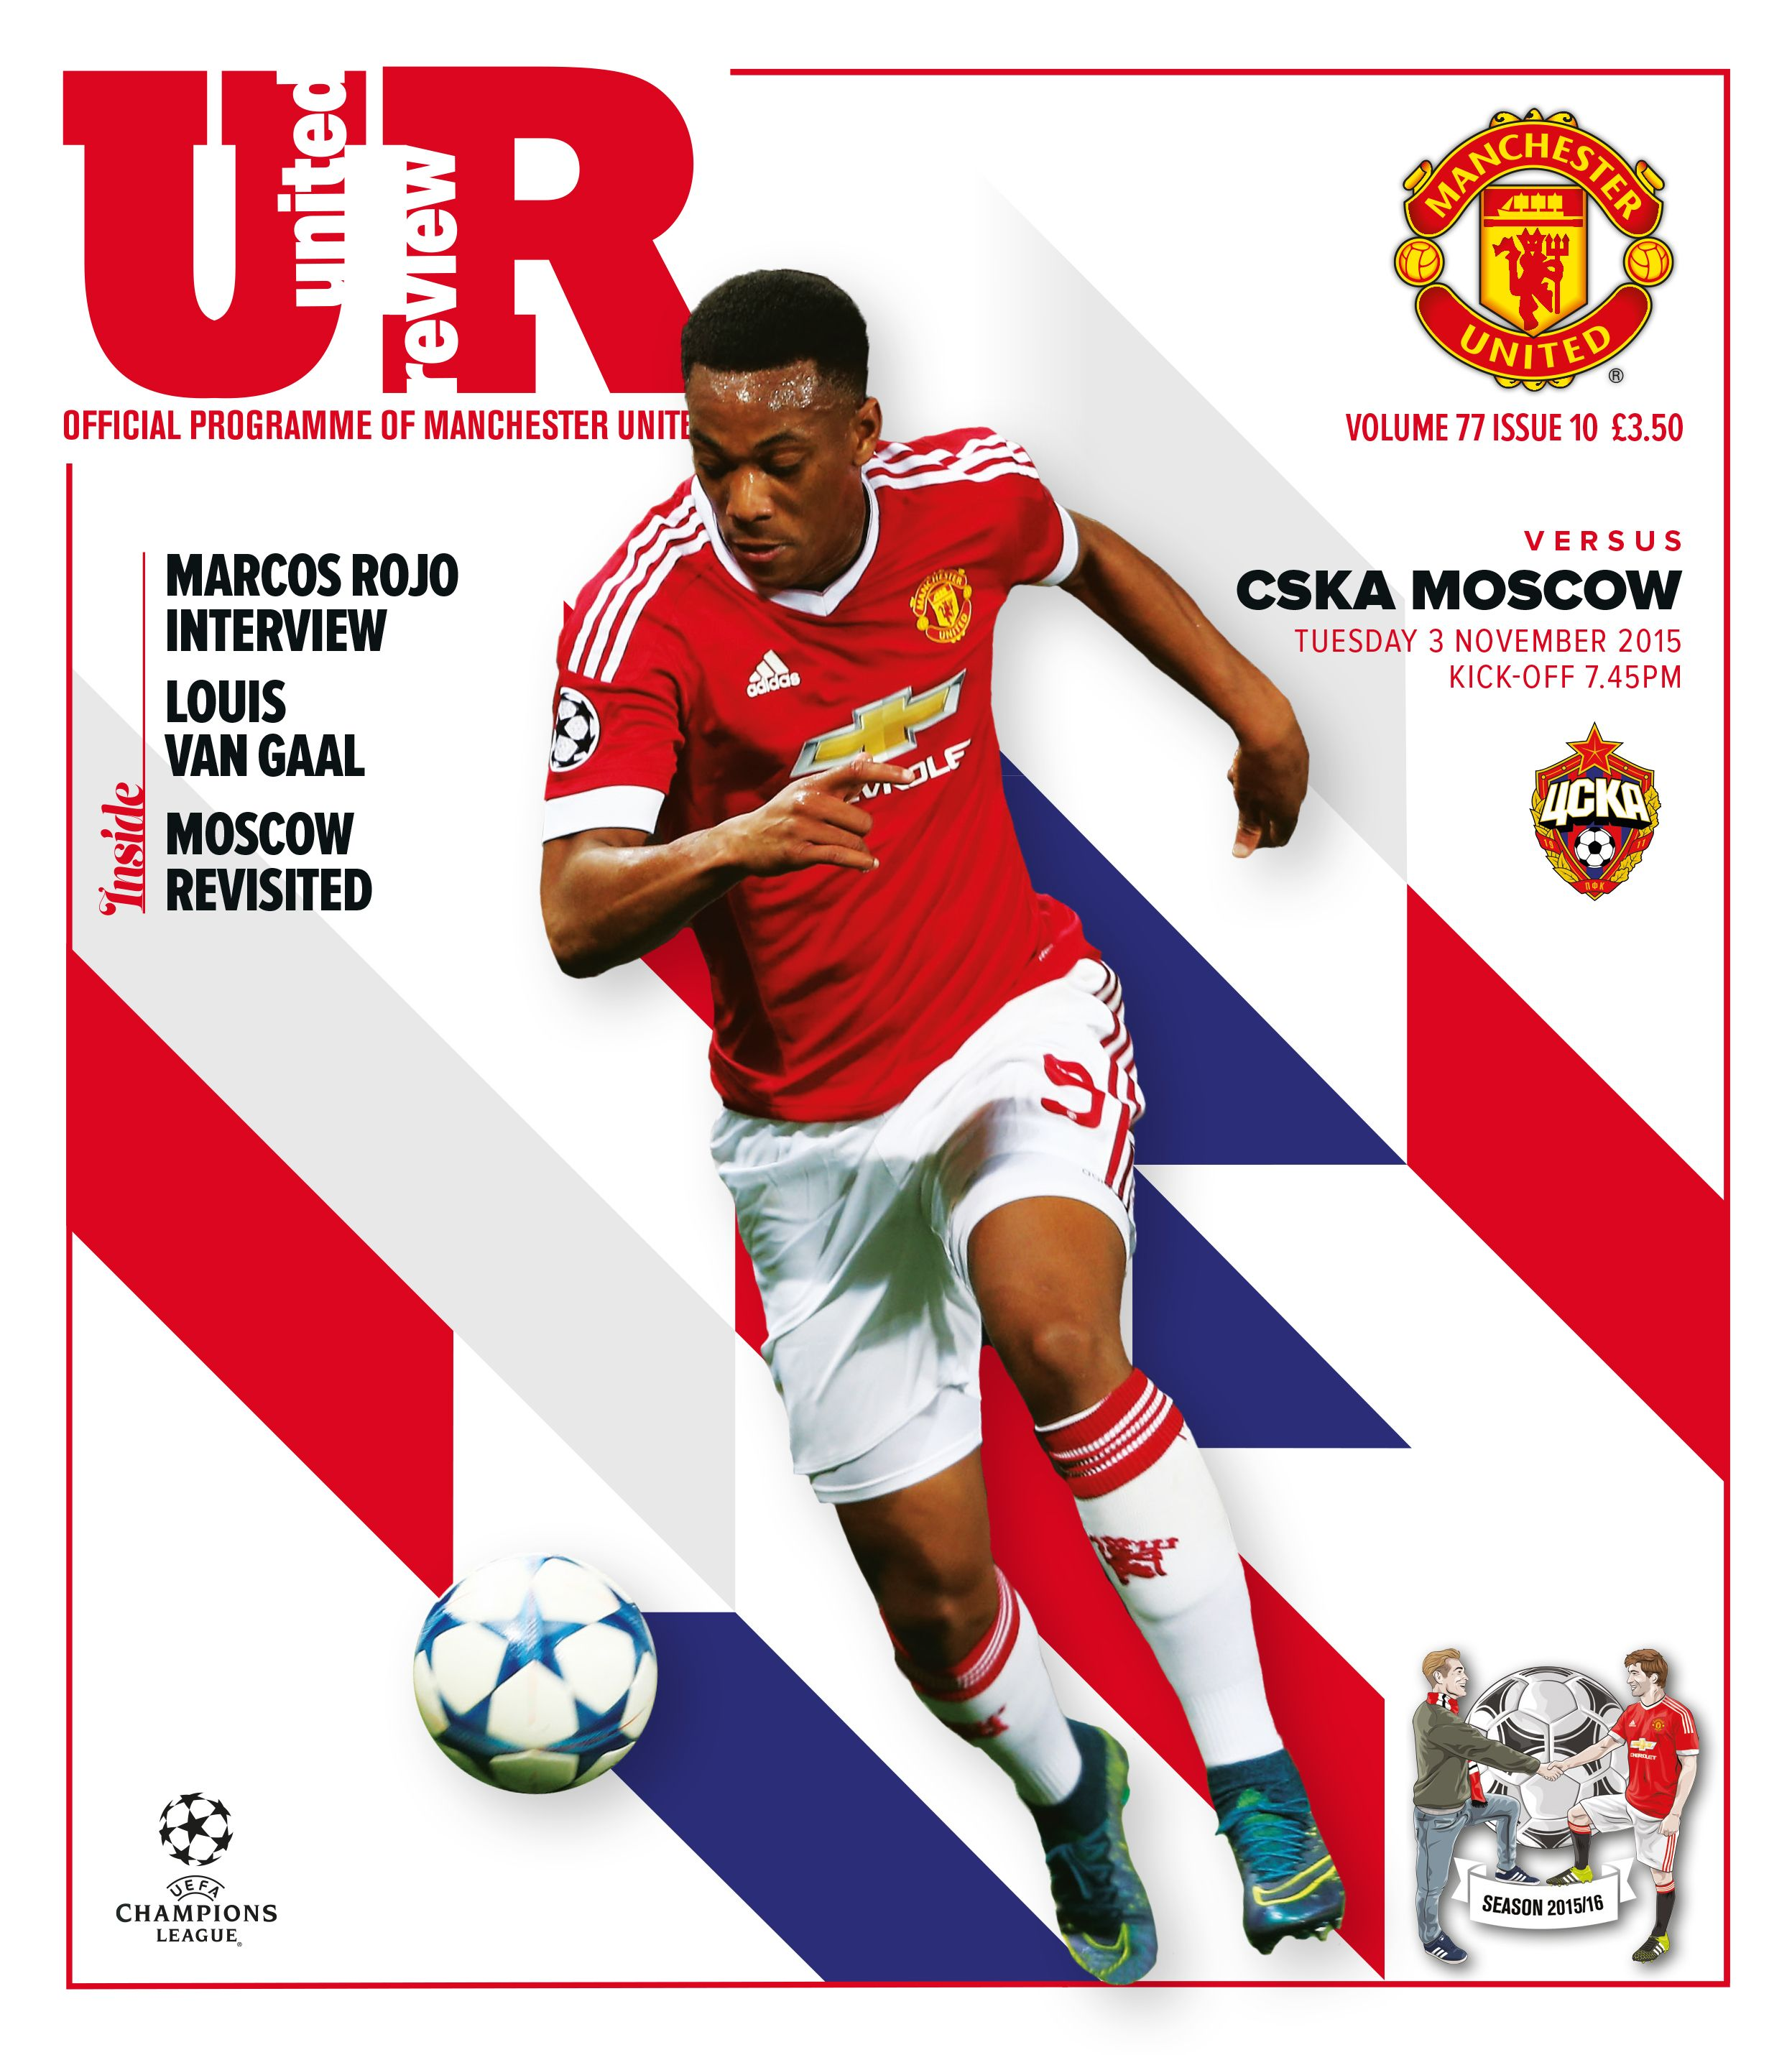 The official Manchester United matchday programme, United